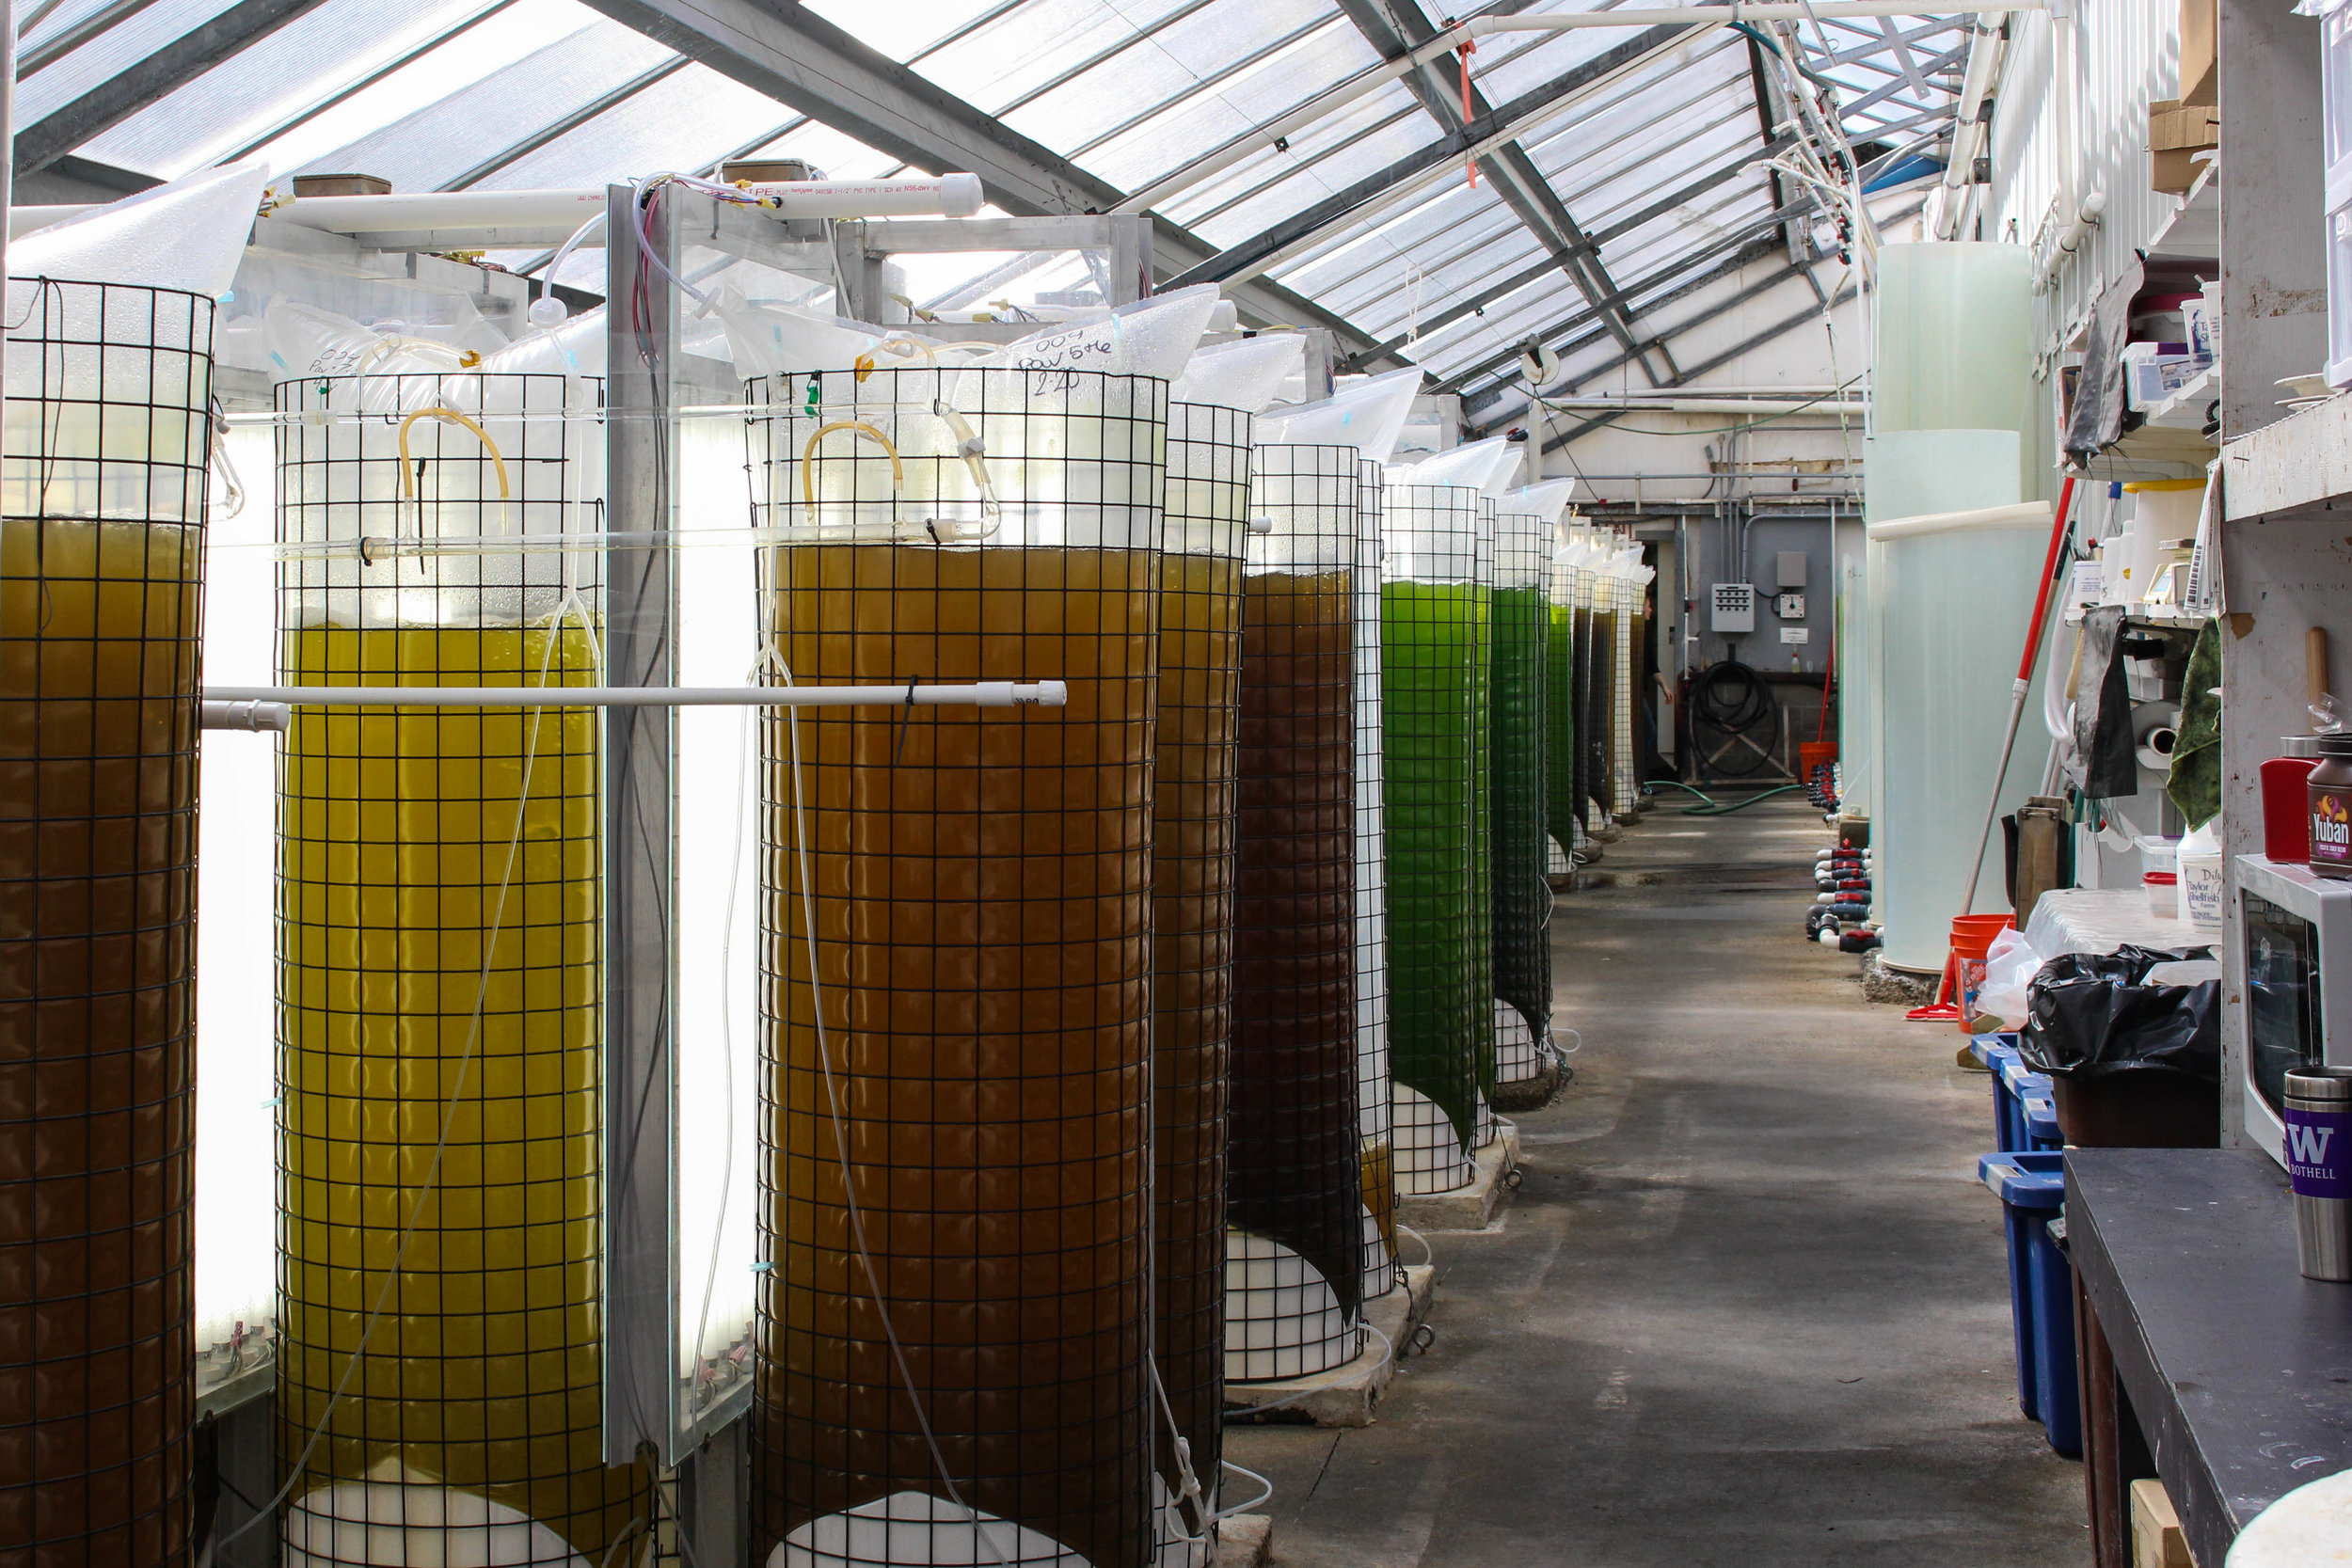 The feeding tanks where algae is grown for larval oysters. Photo Credit: Maxim Podhaisky